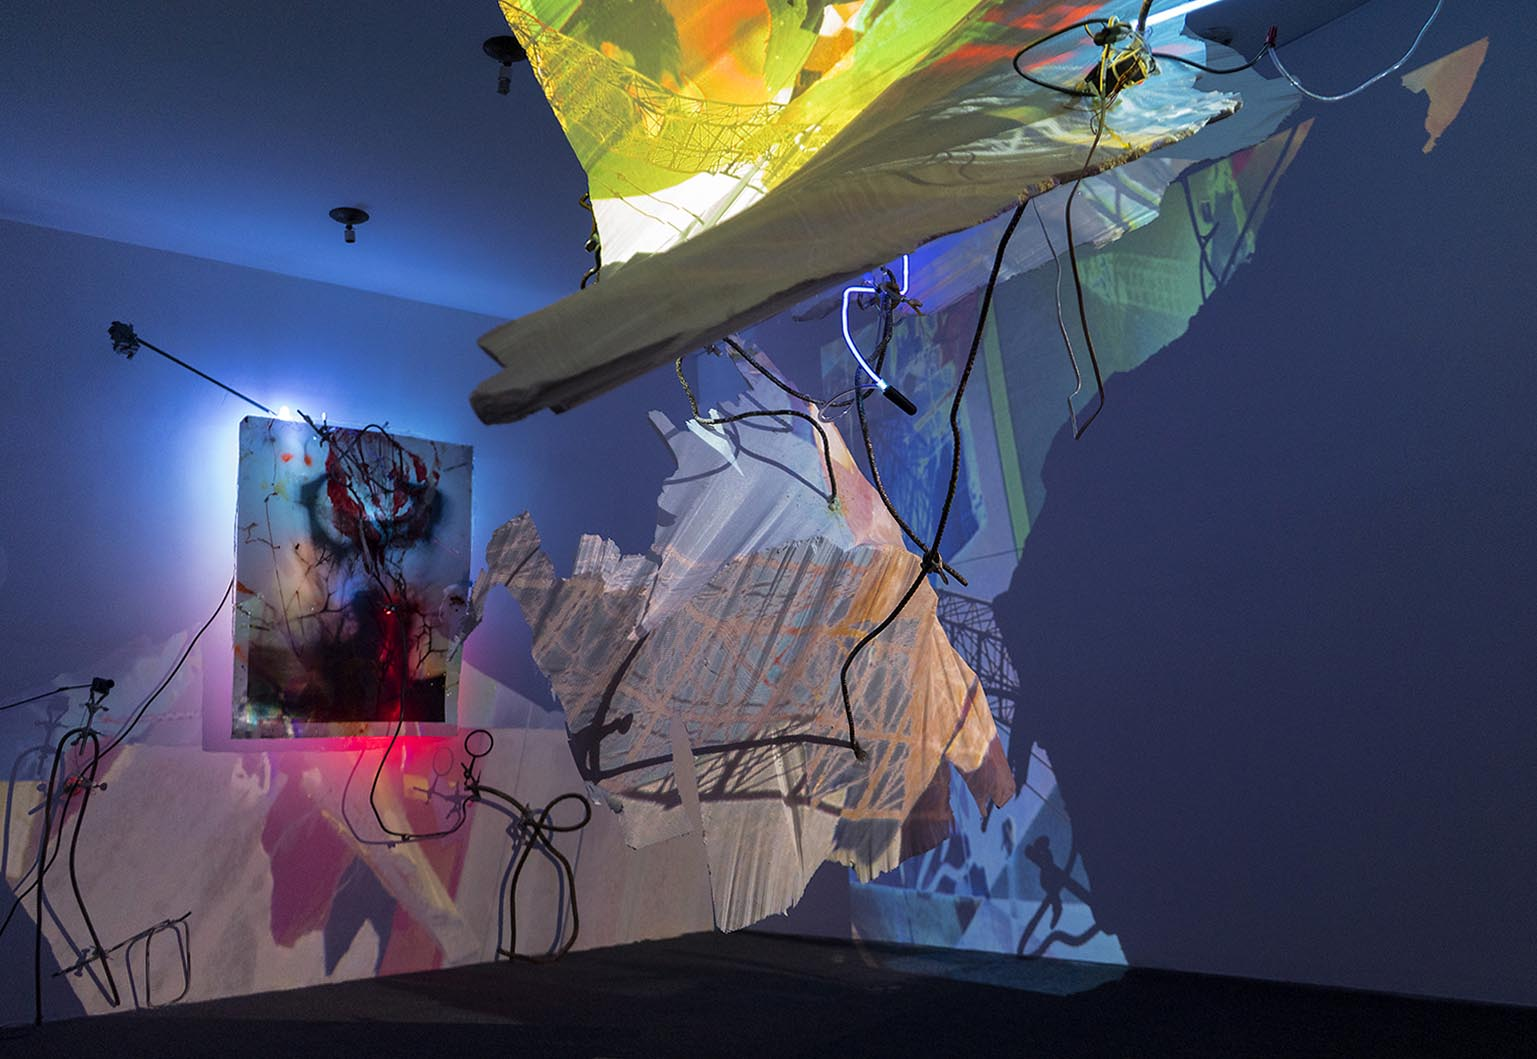 """""""Dear Volunteers"""", collaborative installation with John Schlesinger, AC Institute, NY, 1,300 SF, 2016. Materials: neon, rebar, styrofoam, painted photos cast in epoxy, lab clamps, security cameras, projectors, computer, algorithmically generated interactive projection-mapped video."""